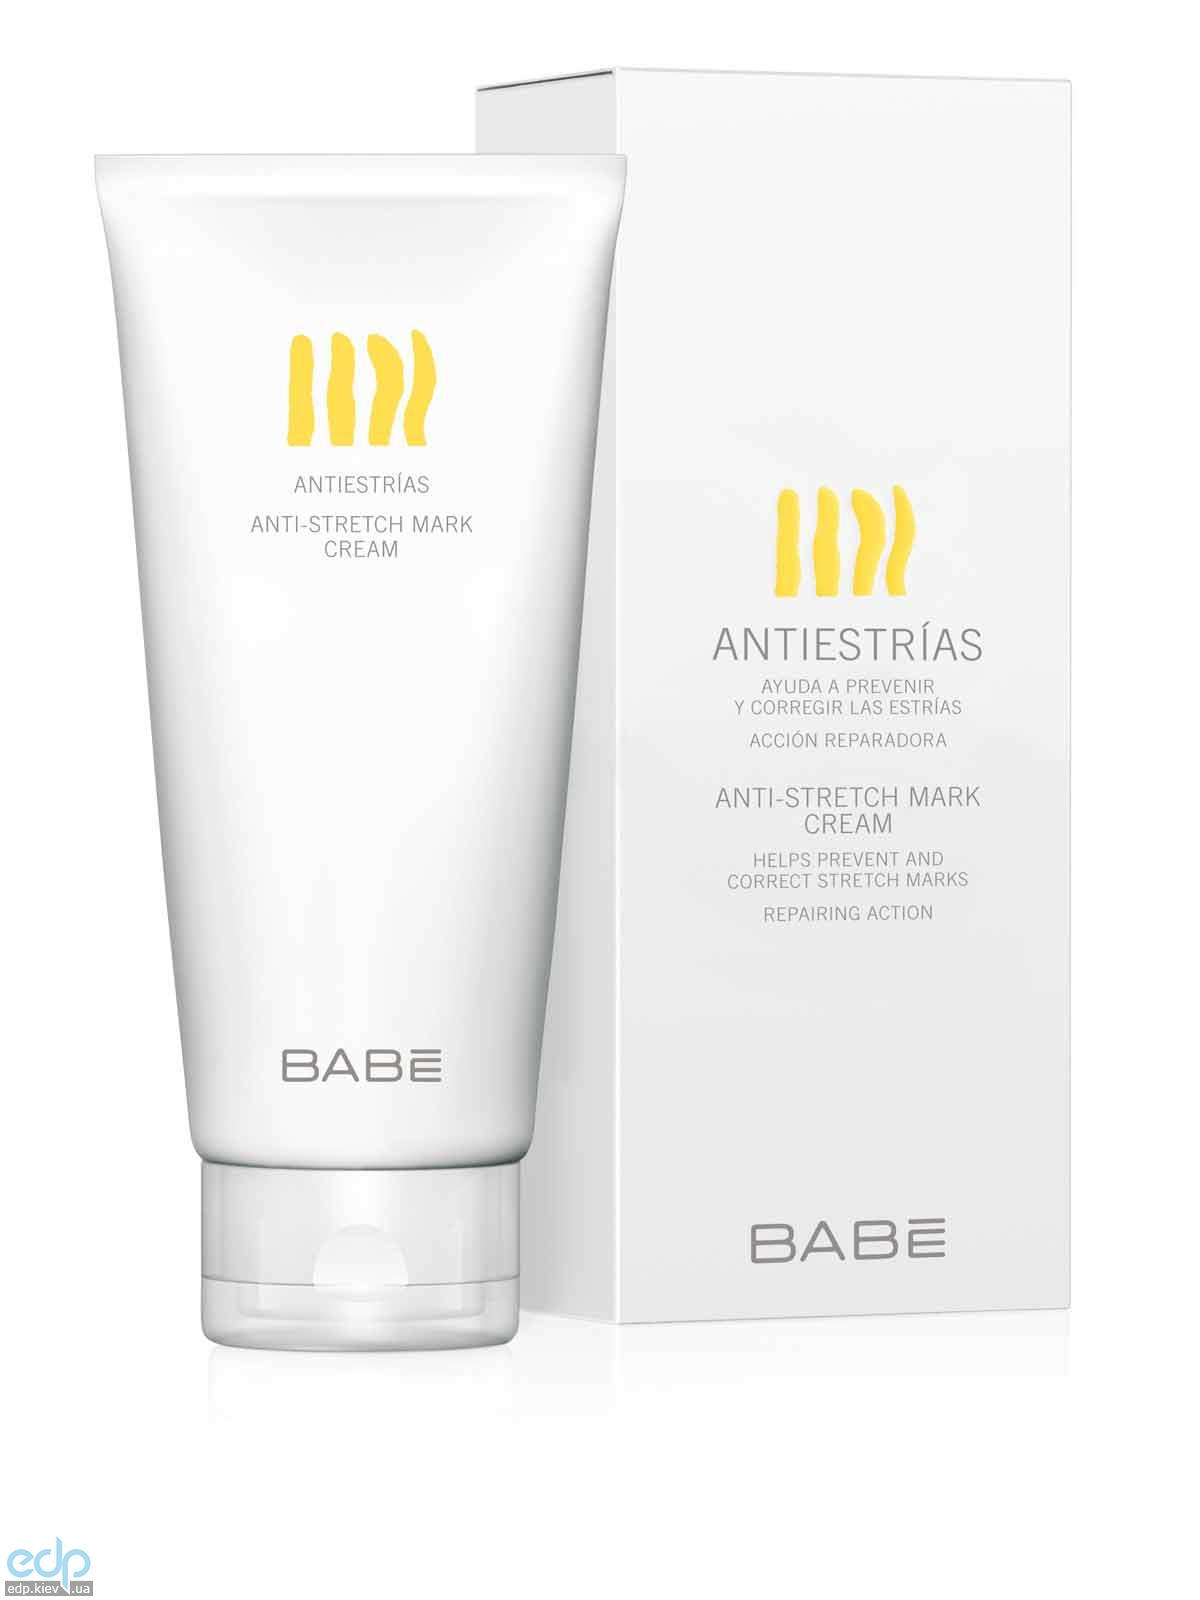 Babe Laboratorios - Крем от растяжек - 200 ml (арт. 157948525)